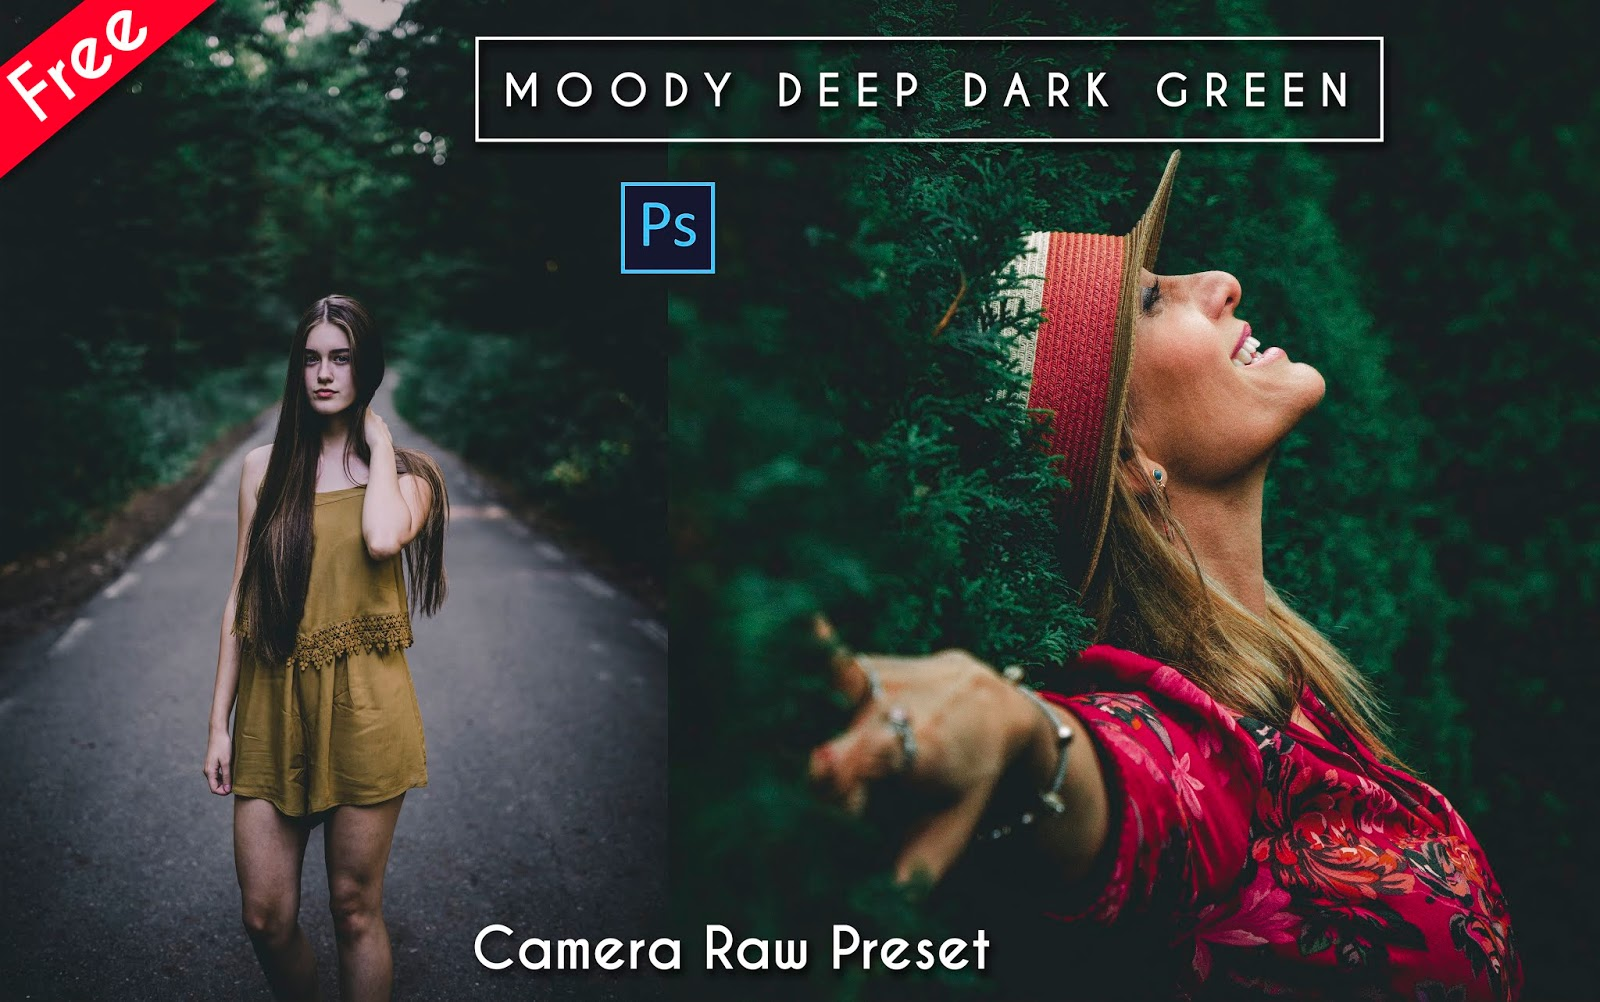 Download Moody Deep Dark Green Lightroom Preset for Free | How to Edit Your Photos Like Moody Deep Dark Green Effect in Lightroom